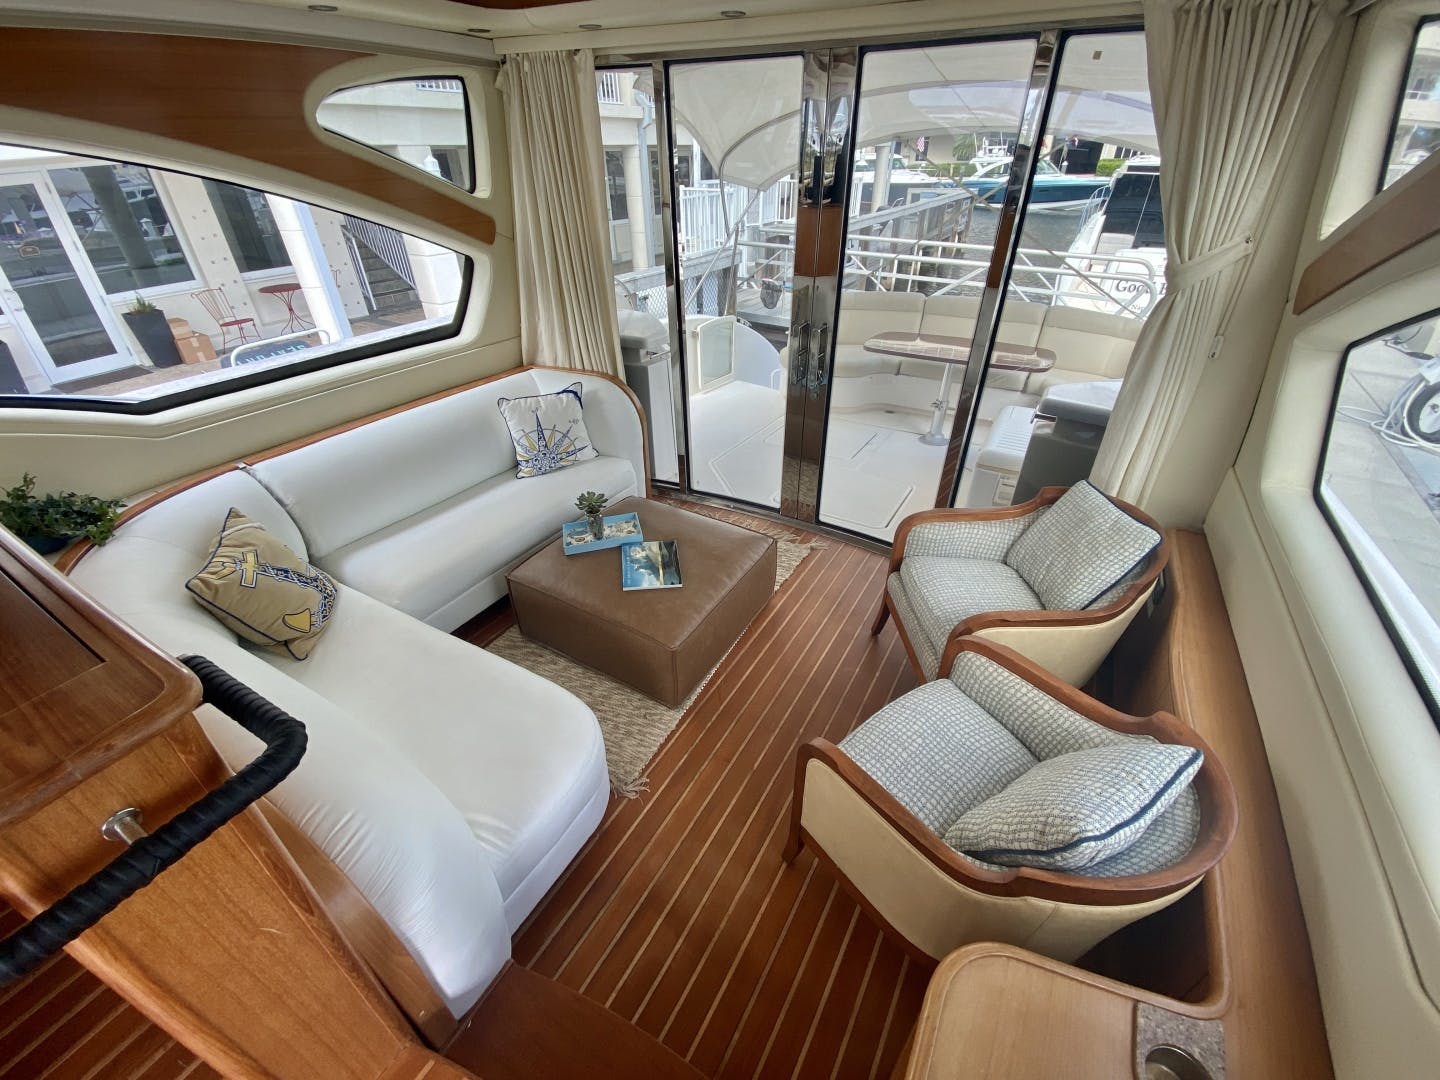 2009 Tiara Yachts 58' 5800 Sovran Eventus | Picture 4 of 14